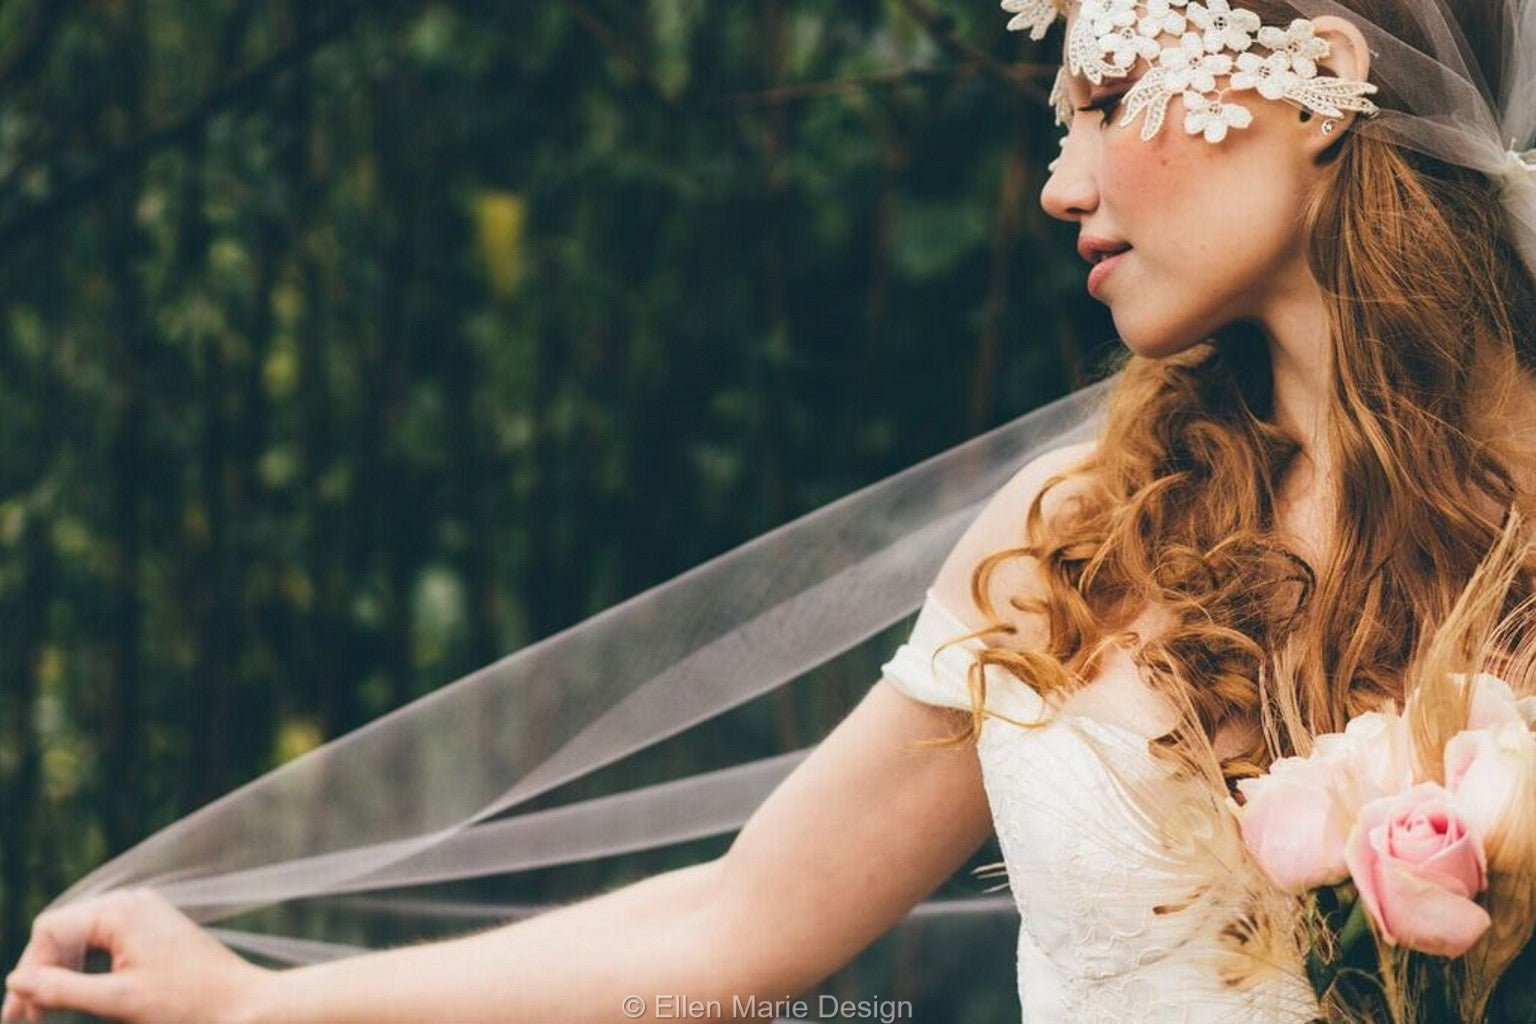 Ellen Marie Design Boho Wedding Veil